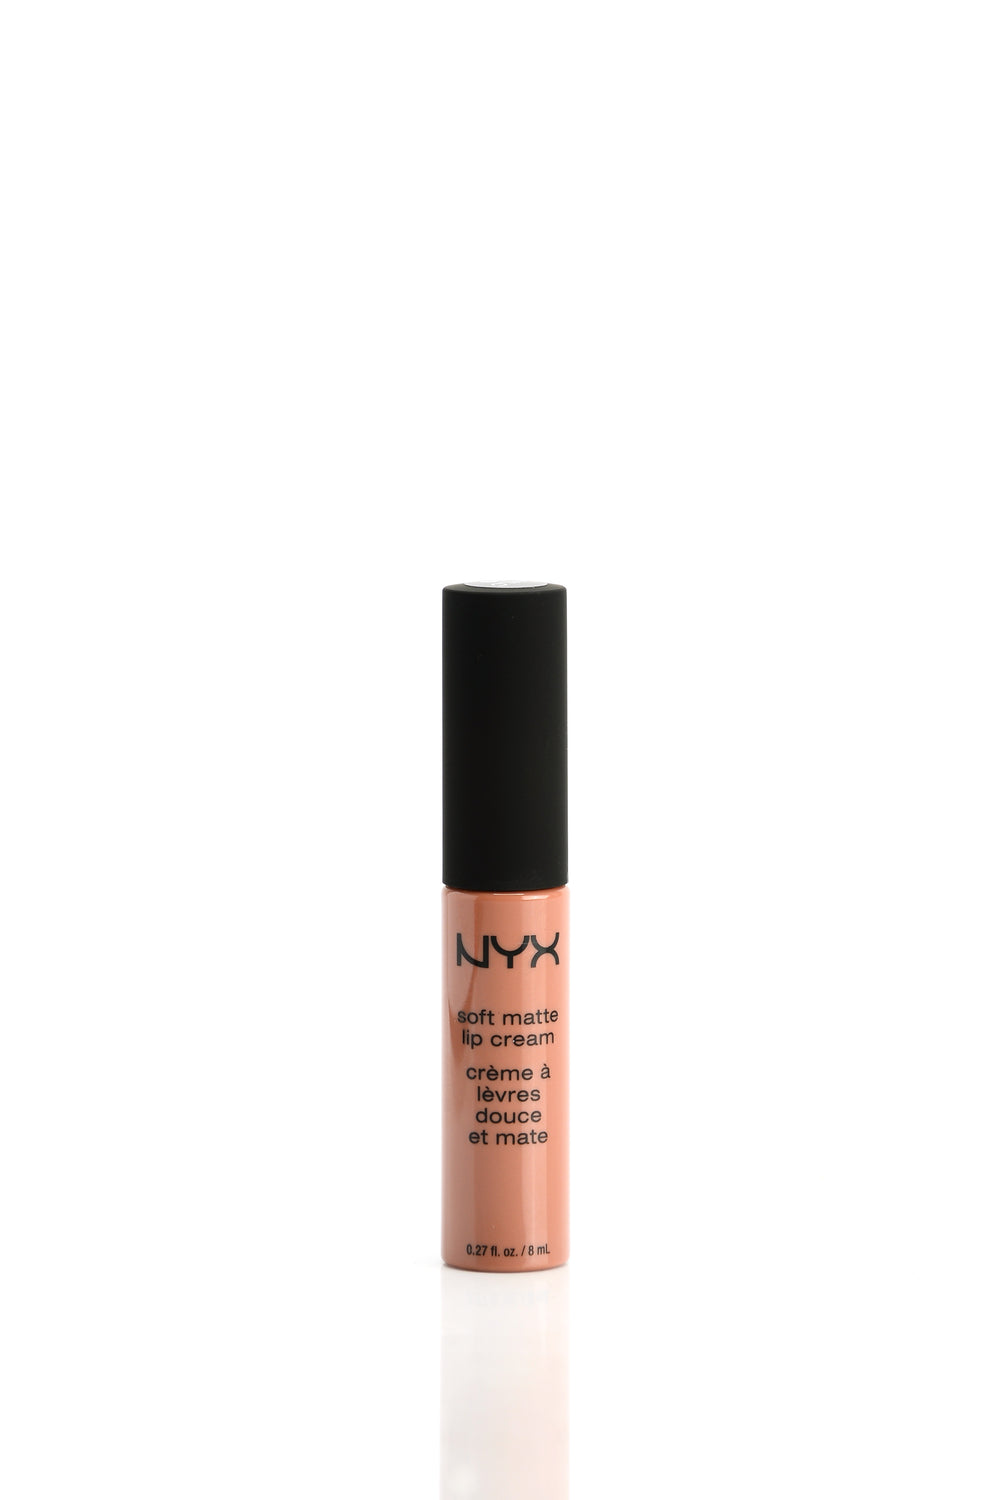 NYX Soft Matte Lip Cream - Abu Dhabi